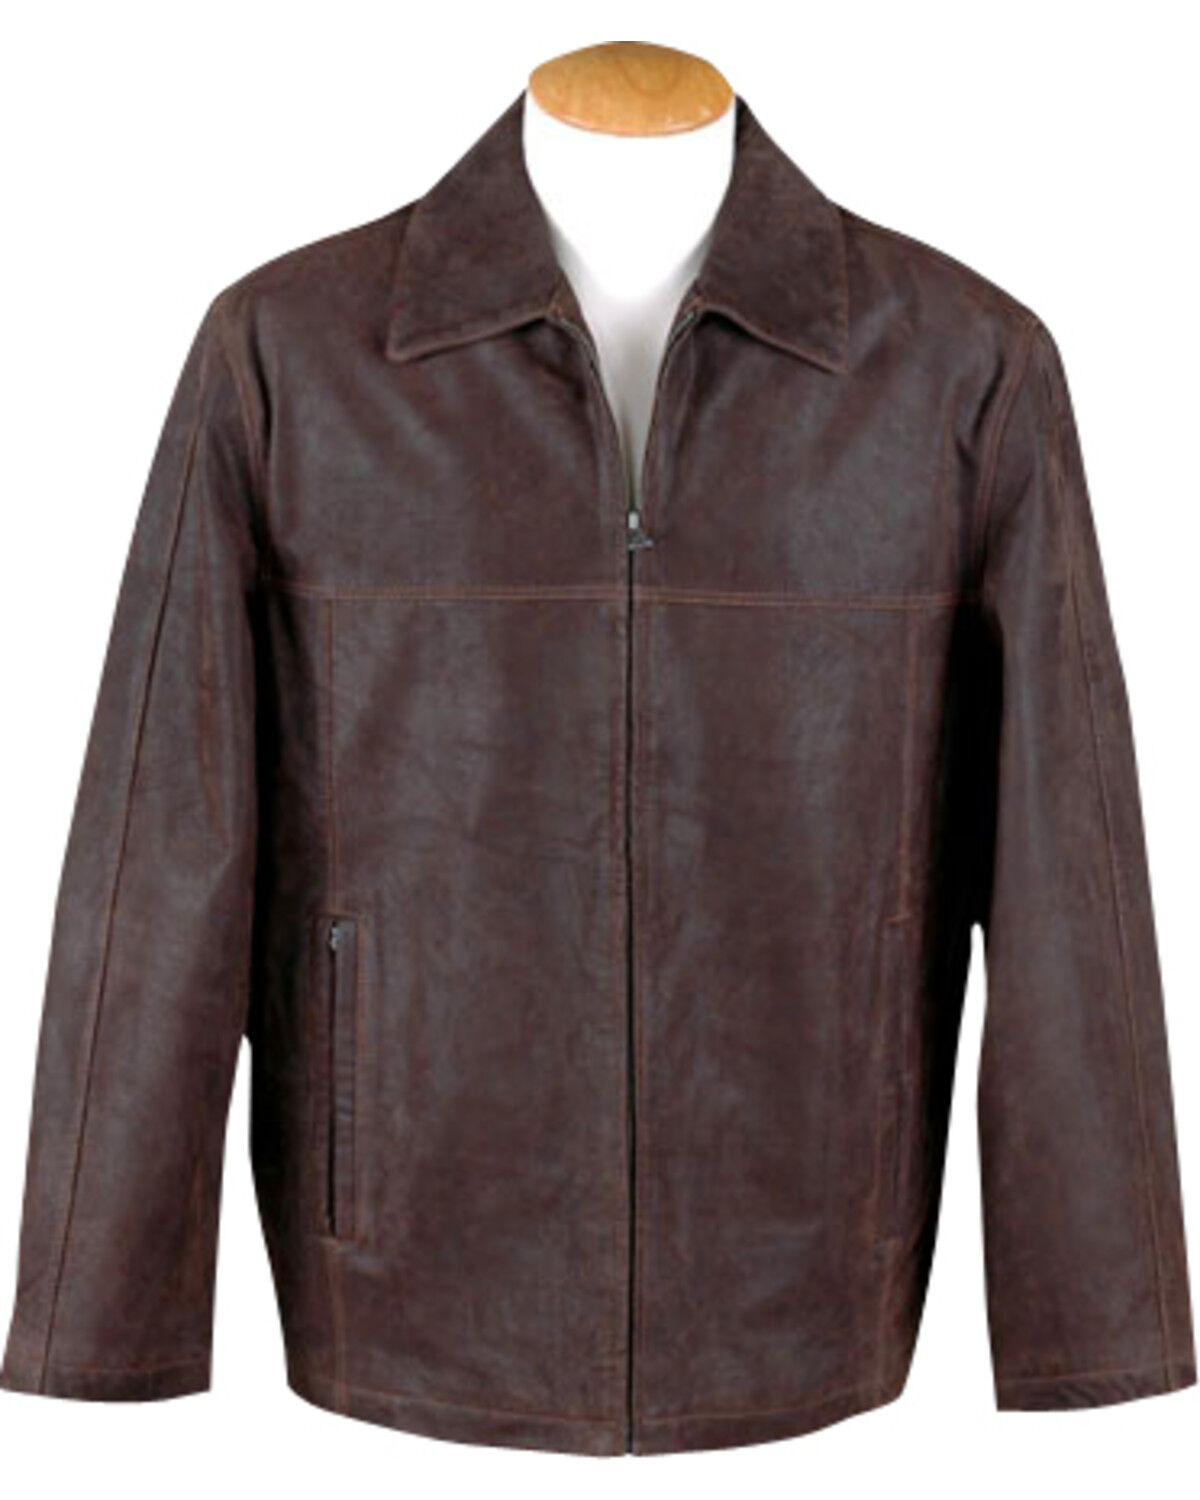 dress - Brown distressed leather jackets for men video